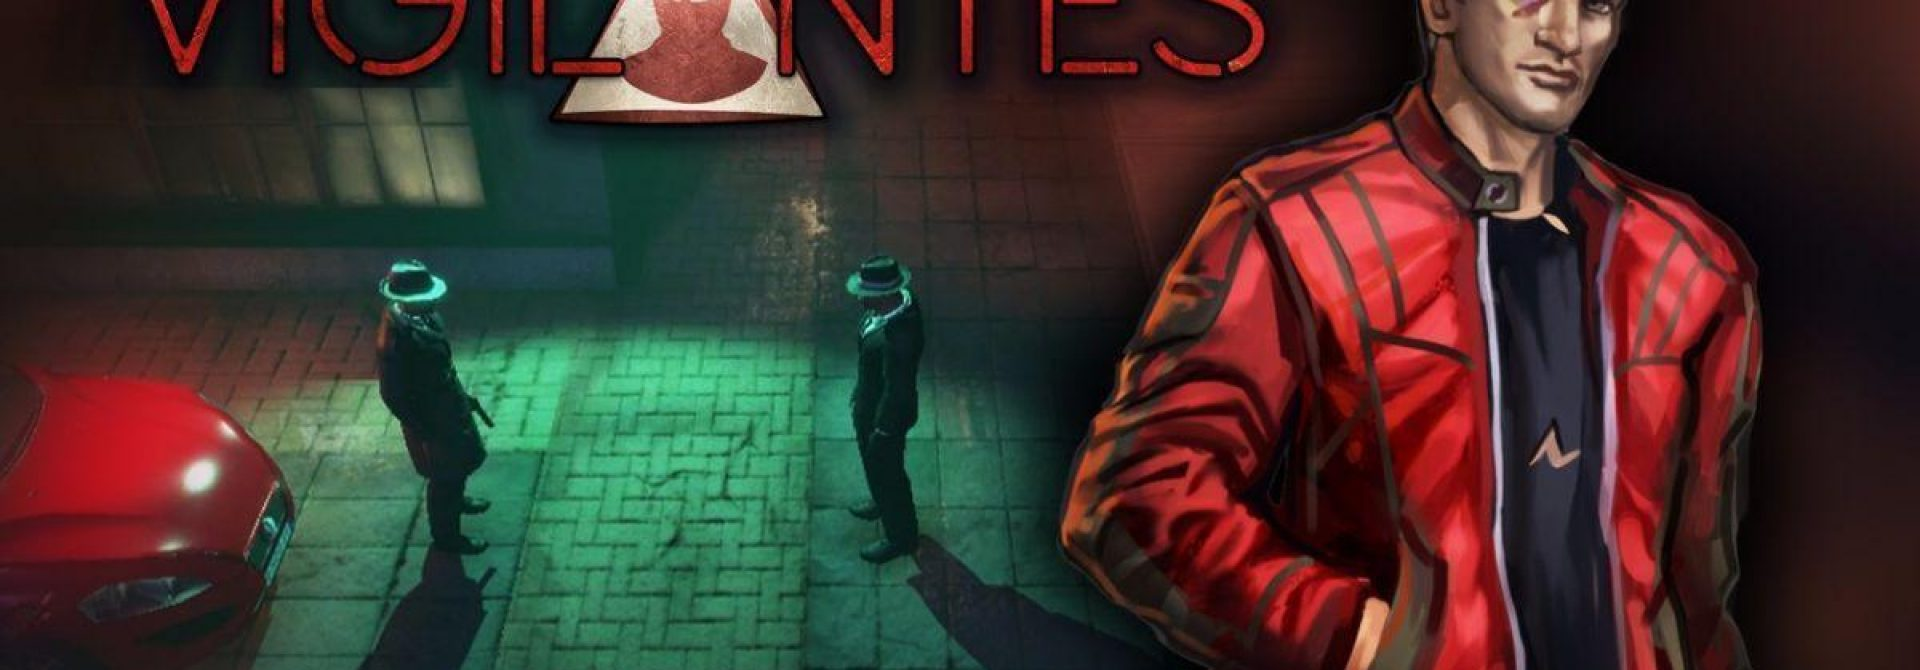 Vigilantes (Steam Early Access) Review